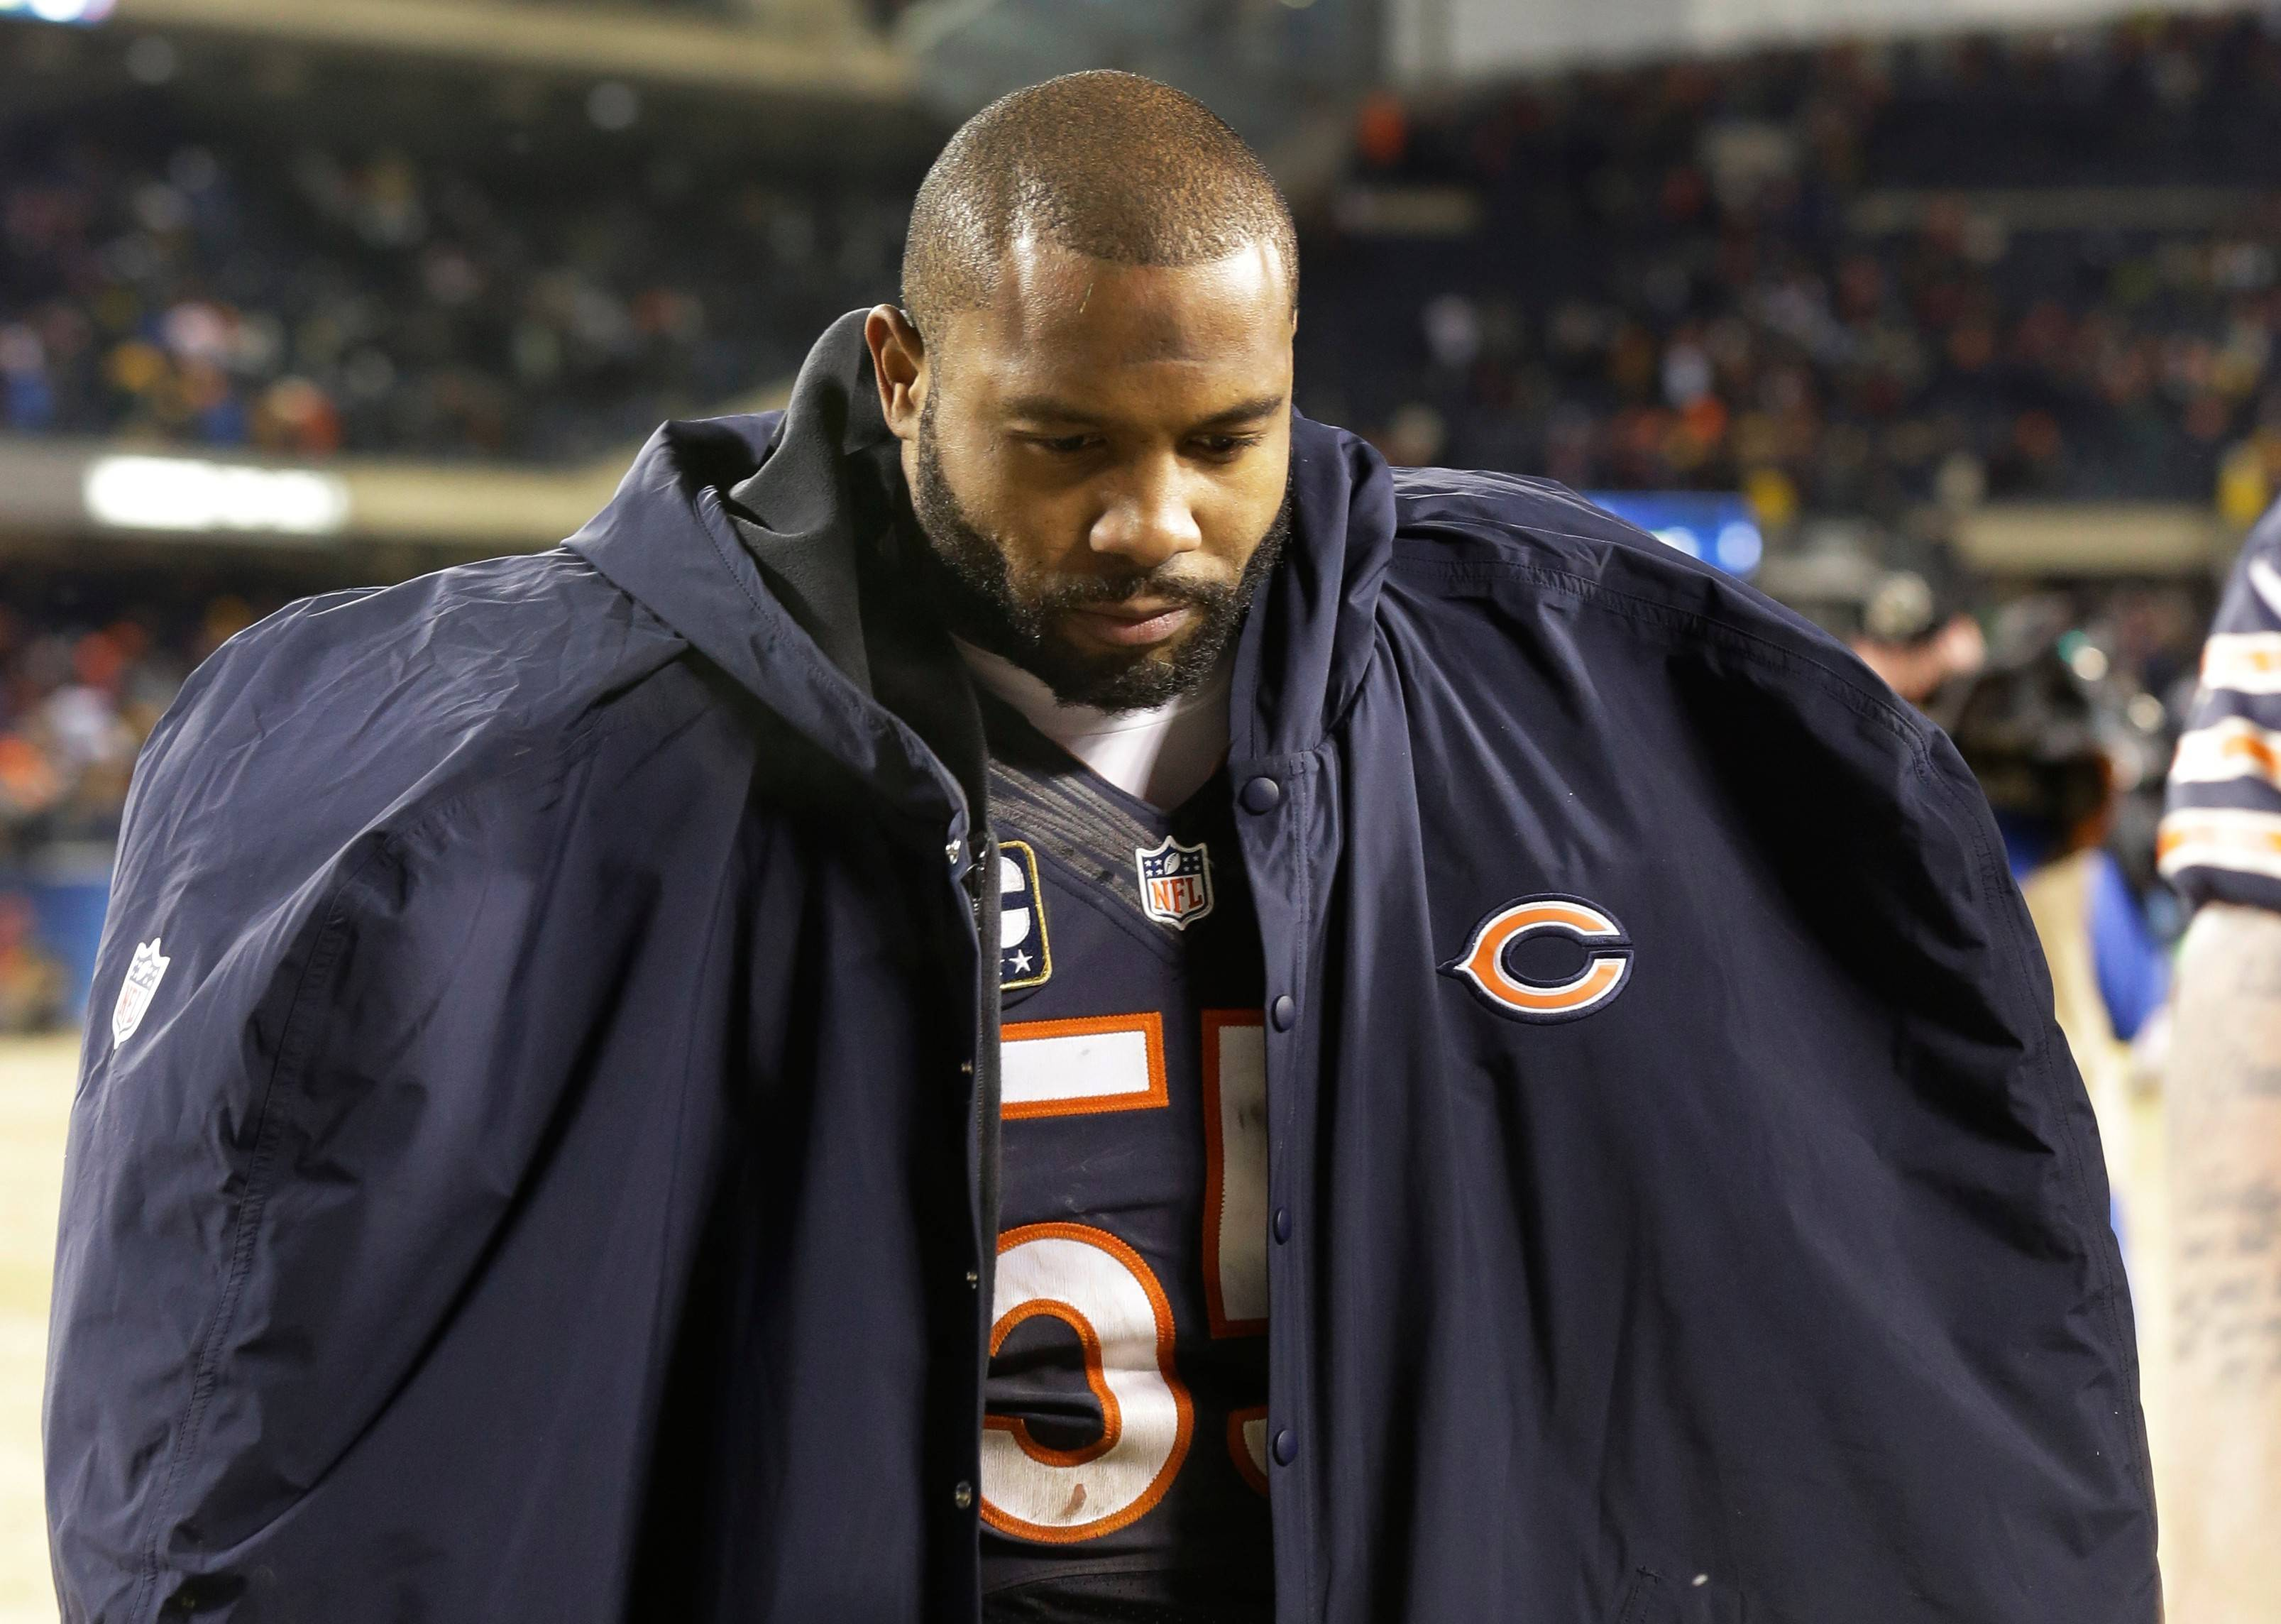 Bears' Briggs tackles day off controversy